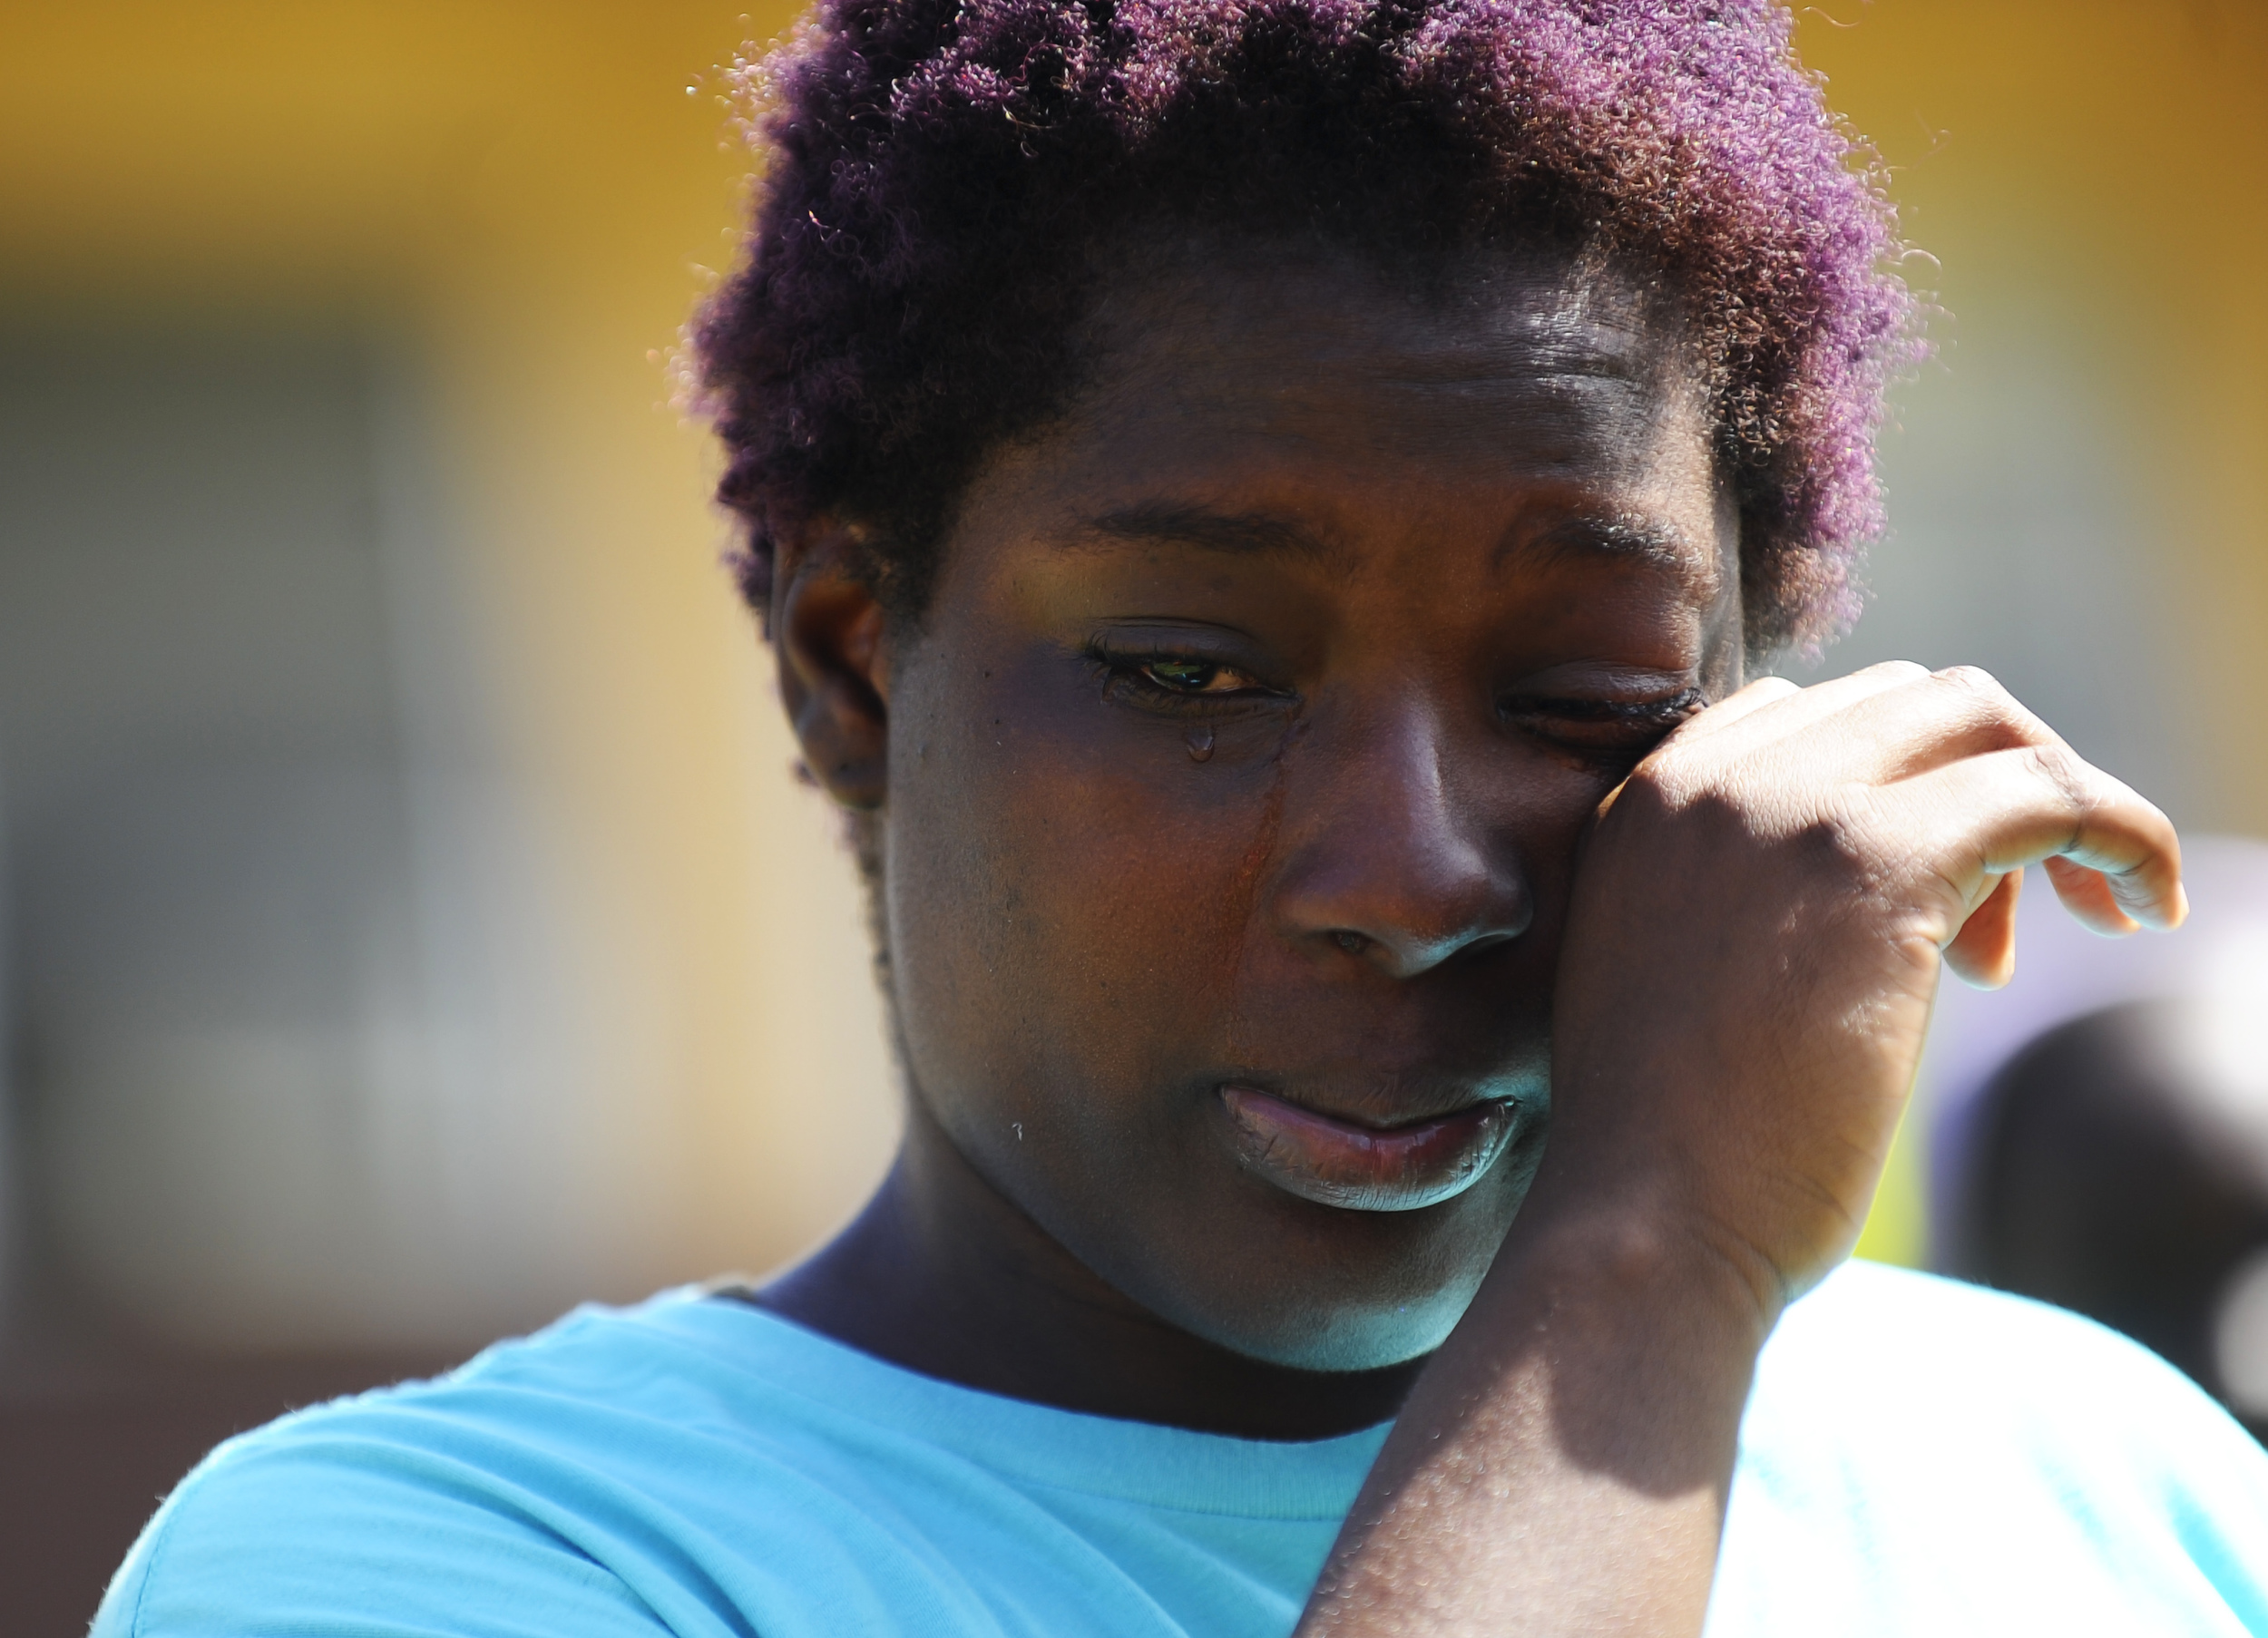 Liberty City community member Quanisha Williams wipes away tears as she speaks about her younger brother Dandre Jackson who was shot to death during a memorial ceremony dedicated to the children/youth and loved ones of those in the community who have lost their lives either through gun violence or natural causes on June 24, 2016.